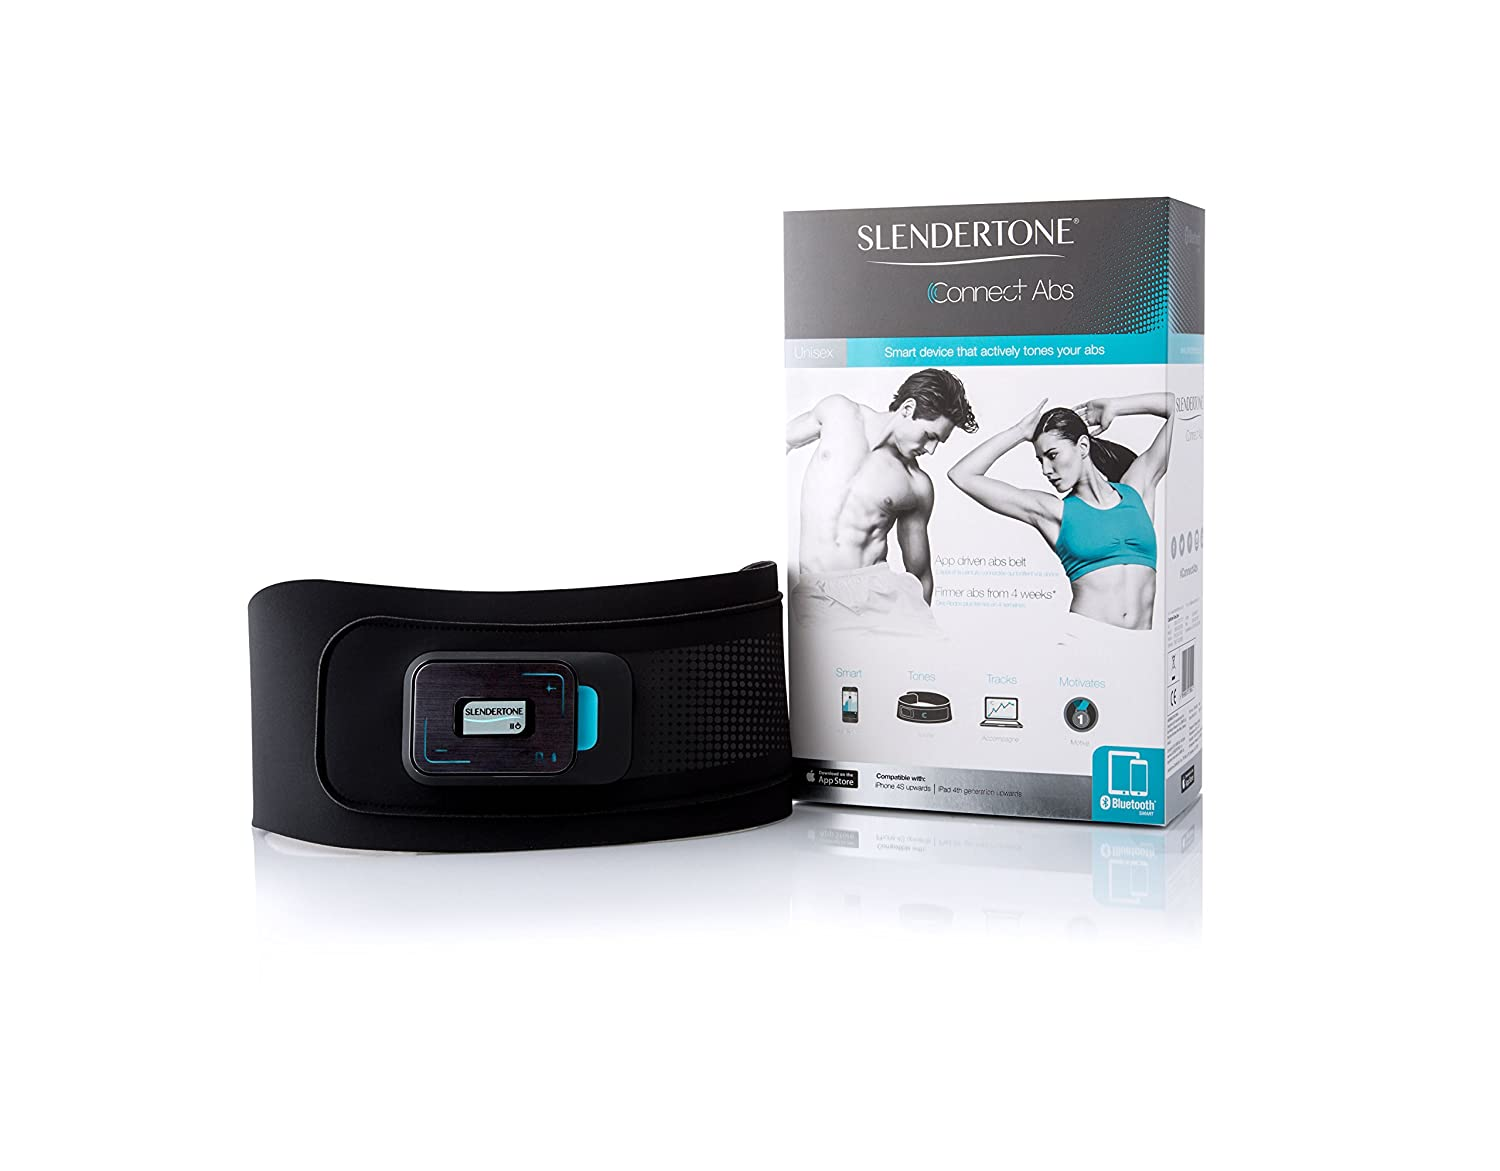 Slendertone Unisex Connect Abs